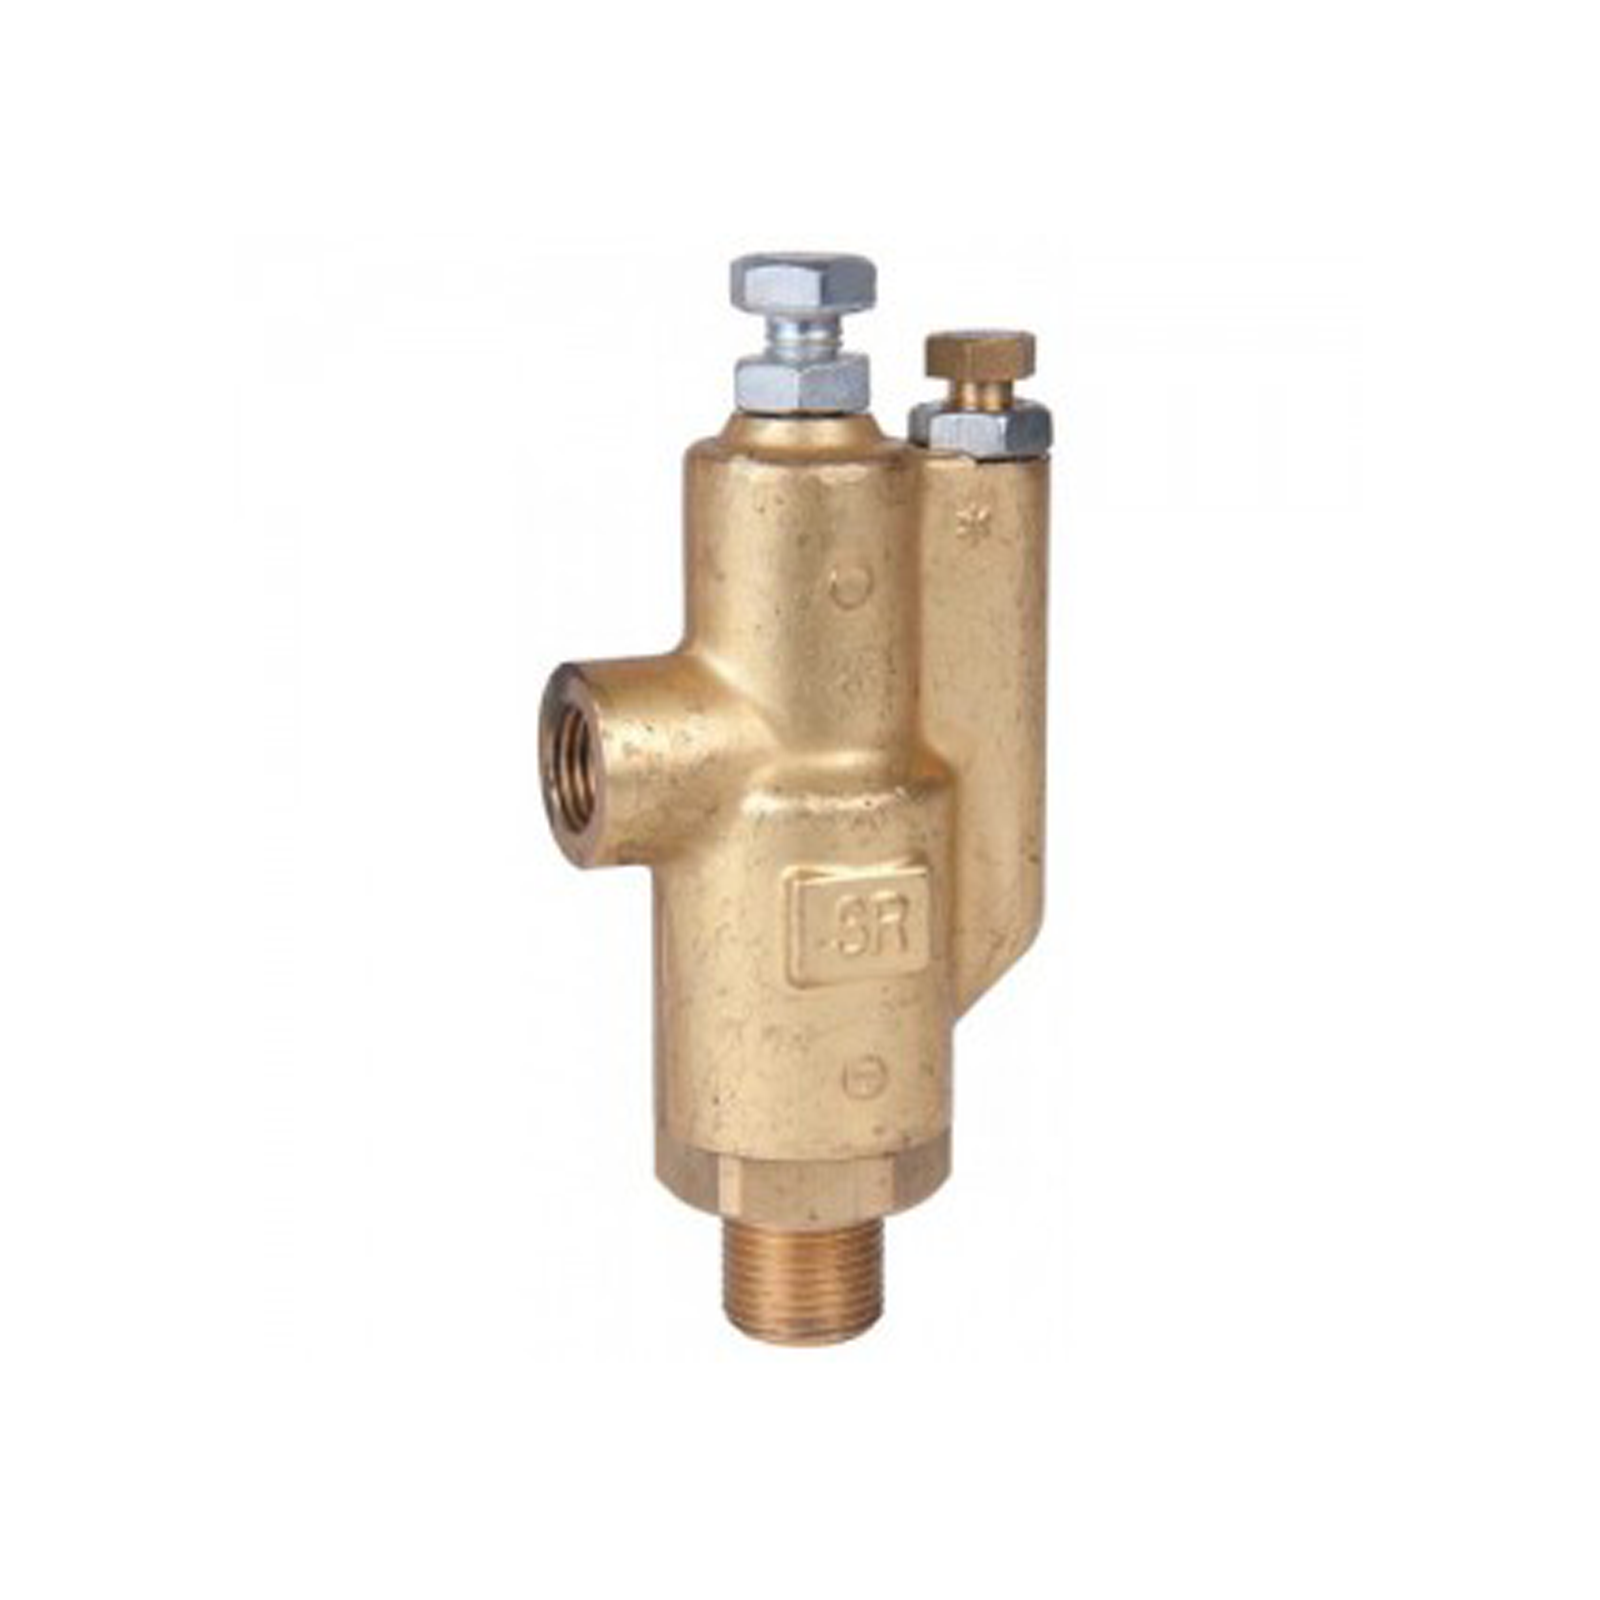 SRi Adjustable Safety Relief Valve 3000psi